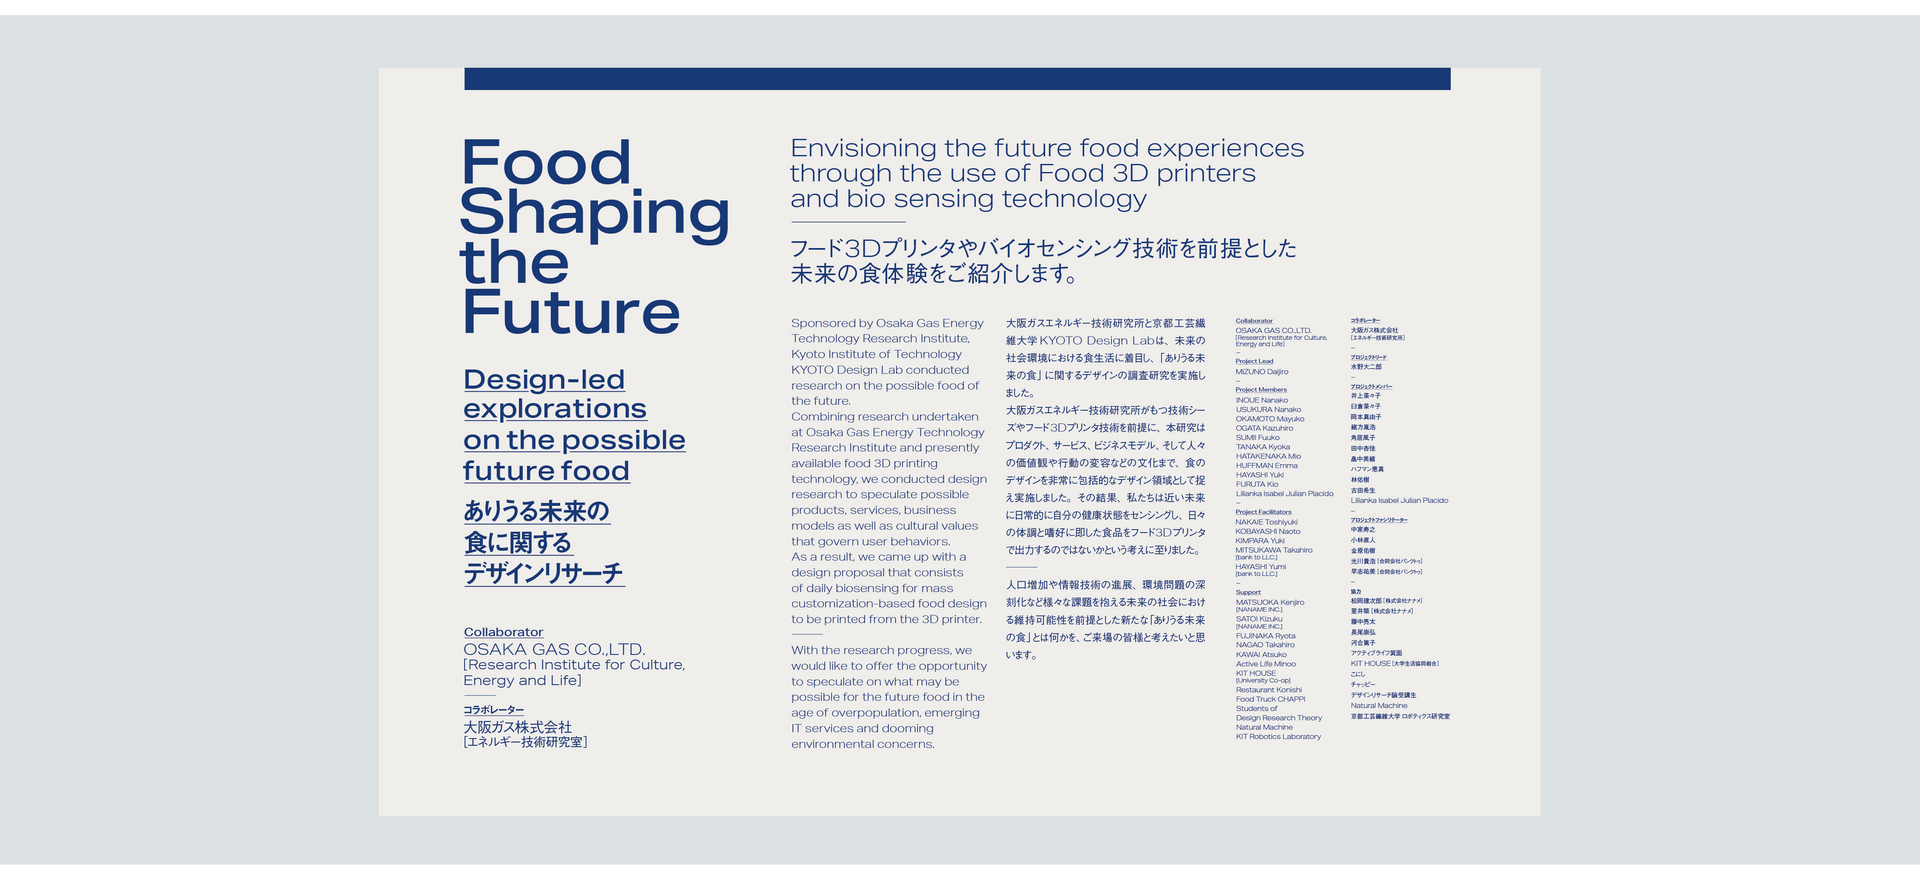 Food Shaping the Future